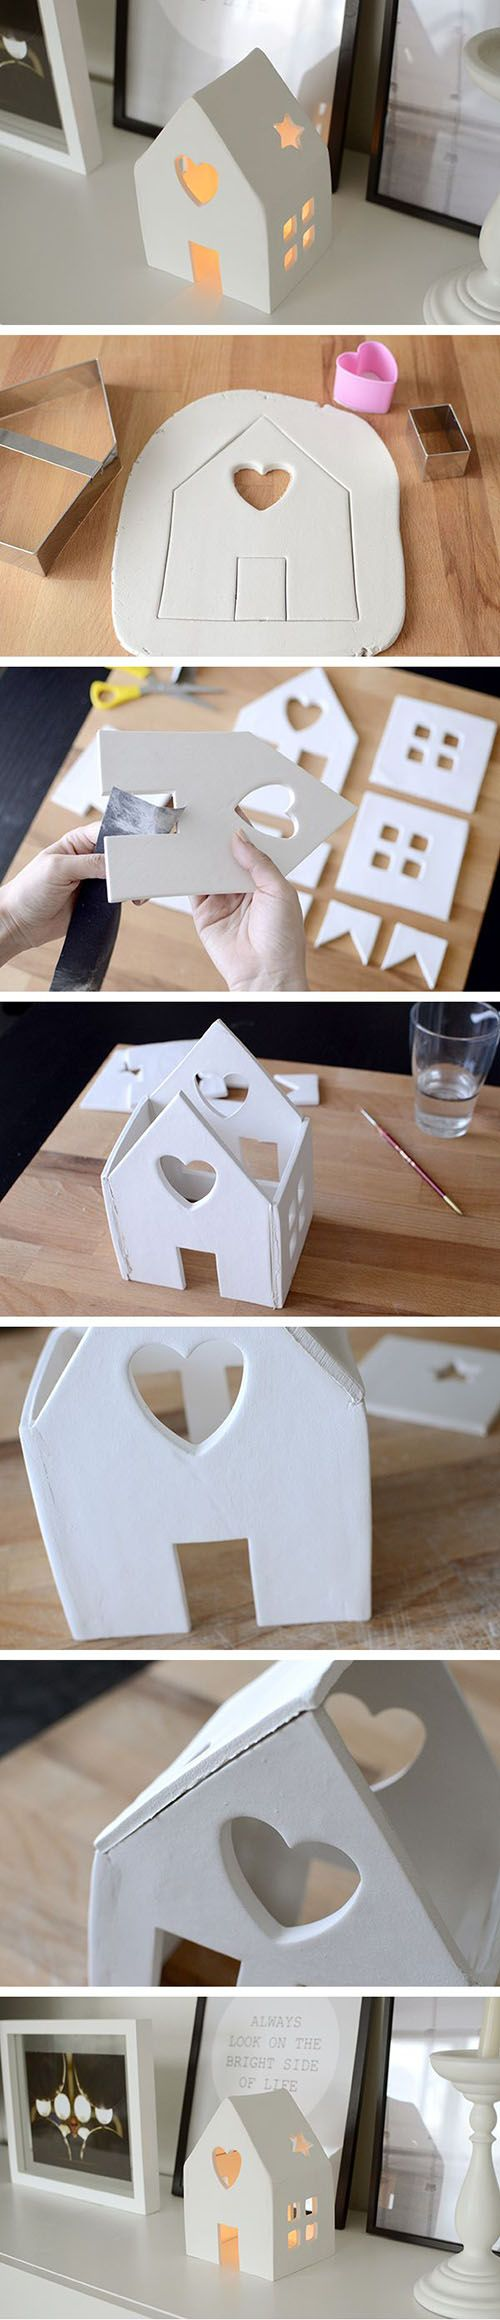 Diy House Candleholder With Clay